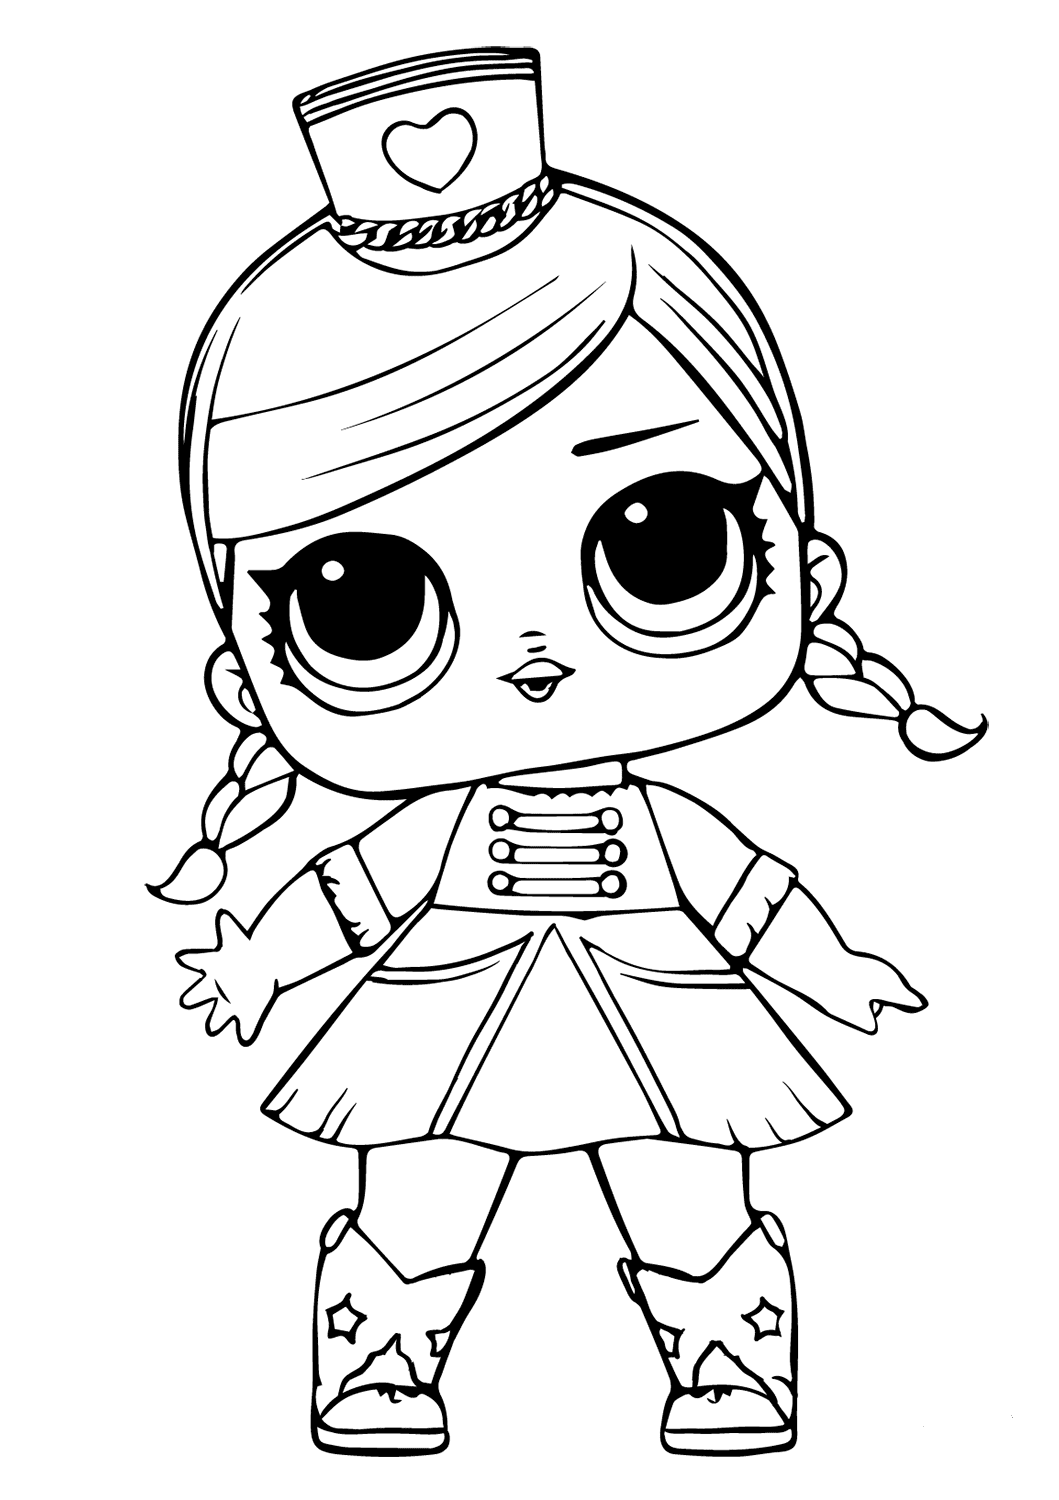 doll coloring sheets dolls coloring pages sheets coloring doll 1 1